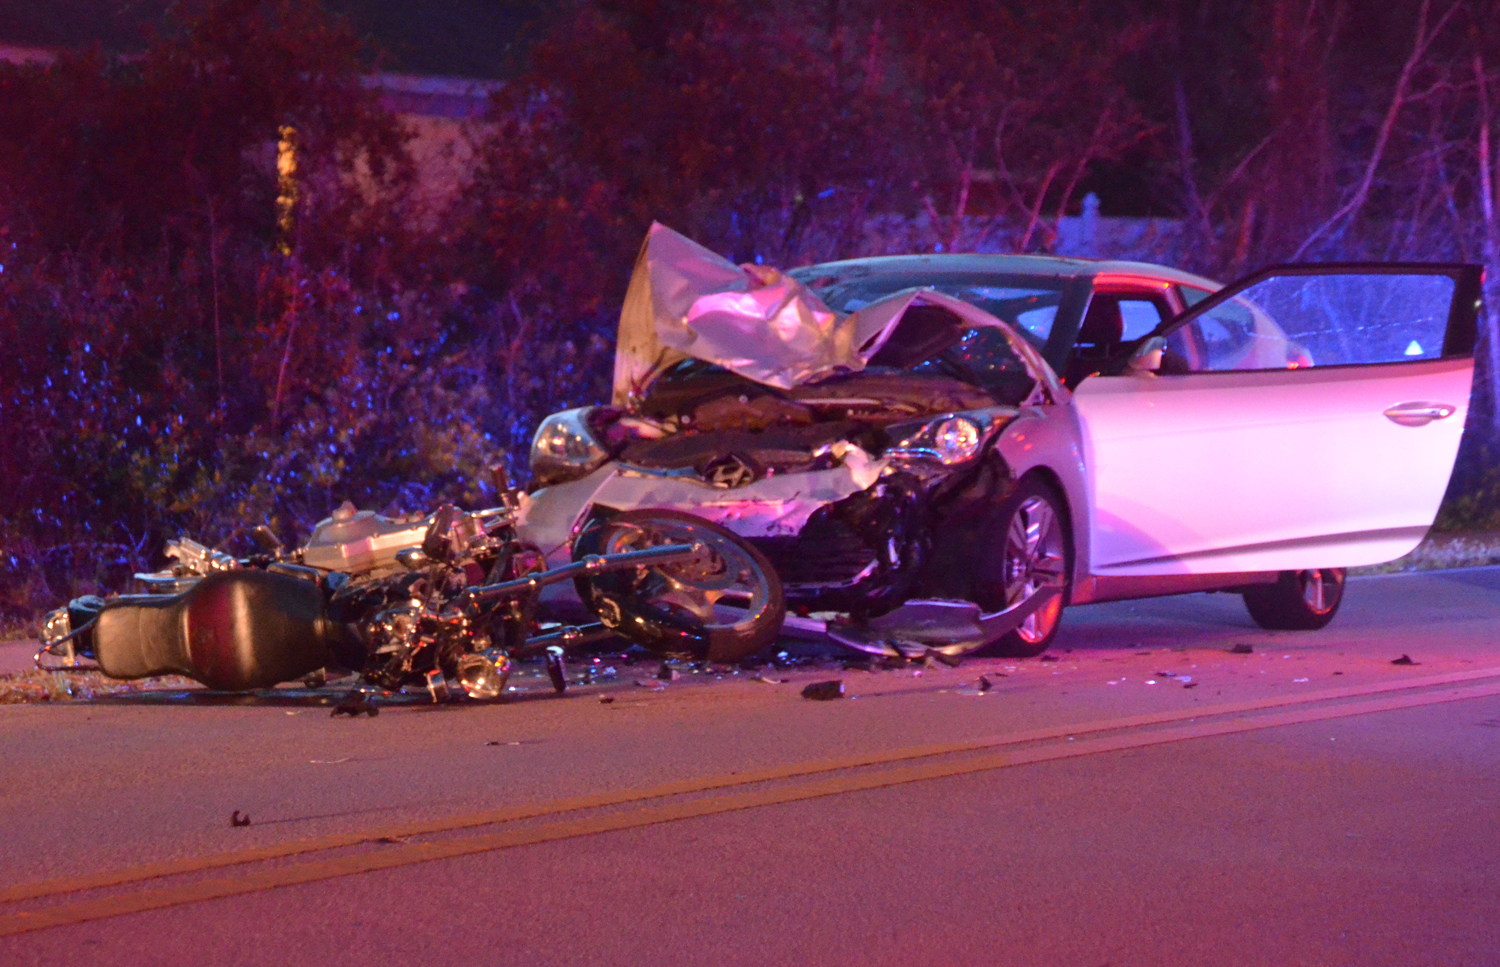 The wreck on Rymfire shortly after the victim was taken to a hospital this evening. (c FlaglerLive)